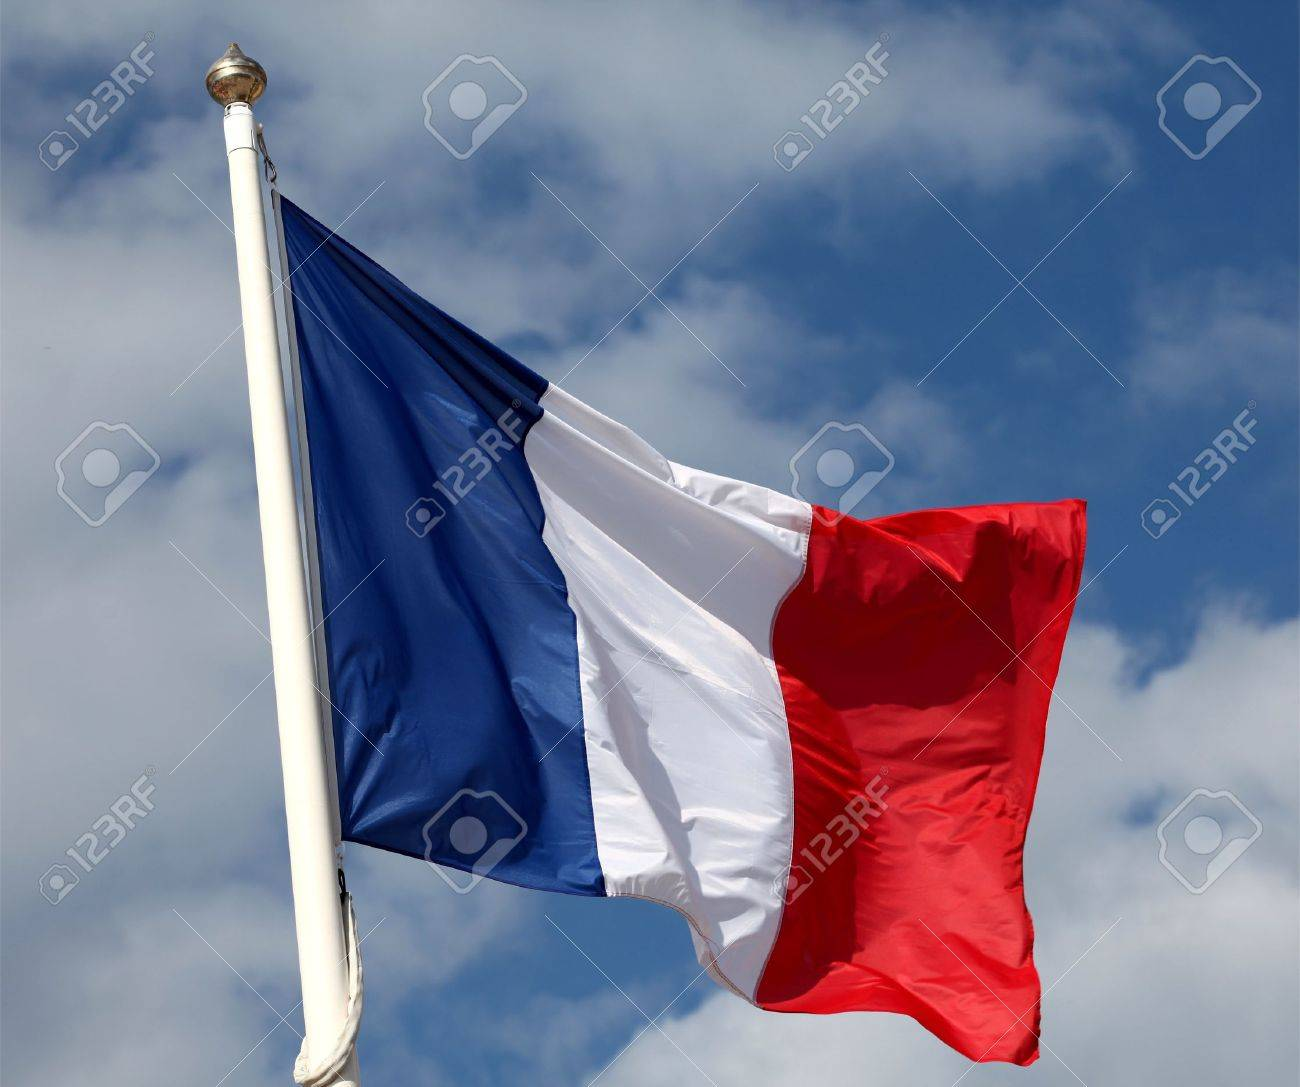 French flag waving in the wind Stock Photo - 14578007